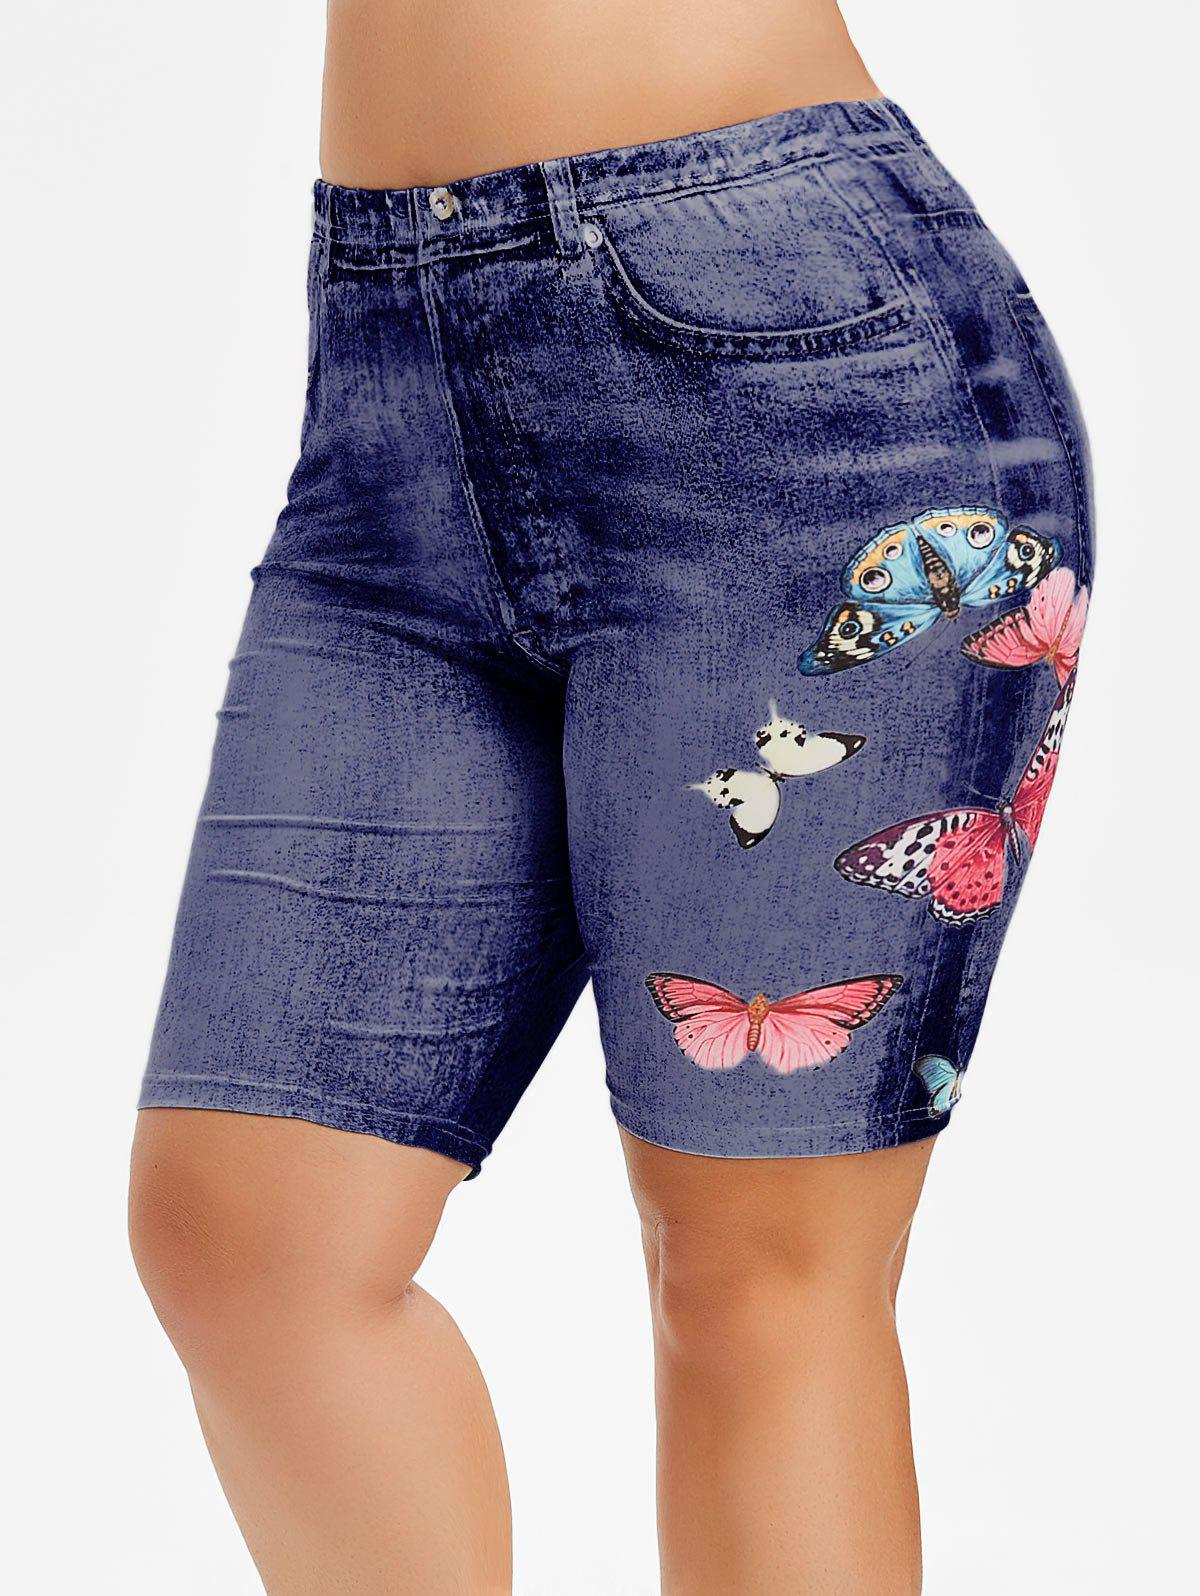 3D Butterfly Jean Print Plus Size Shorts